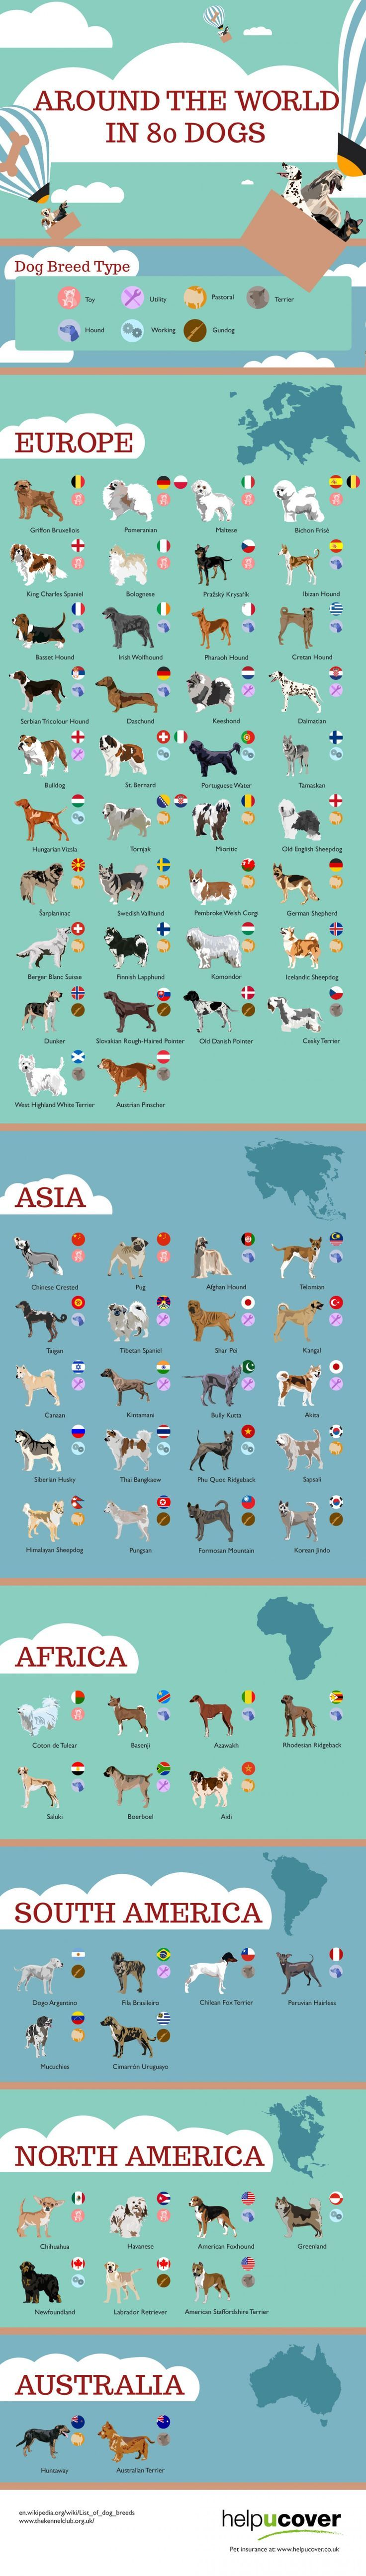 Some useful dog infographics